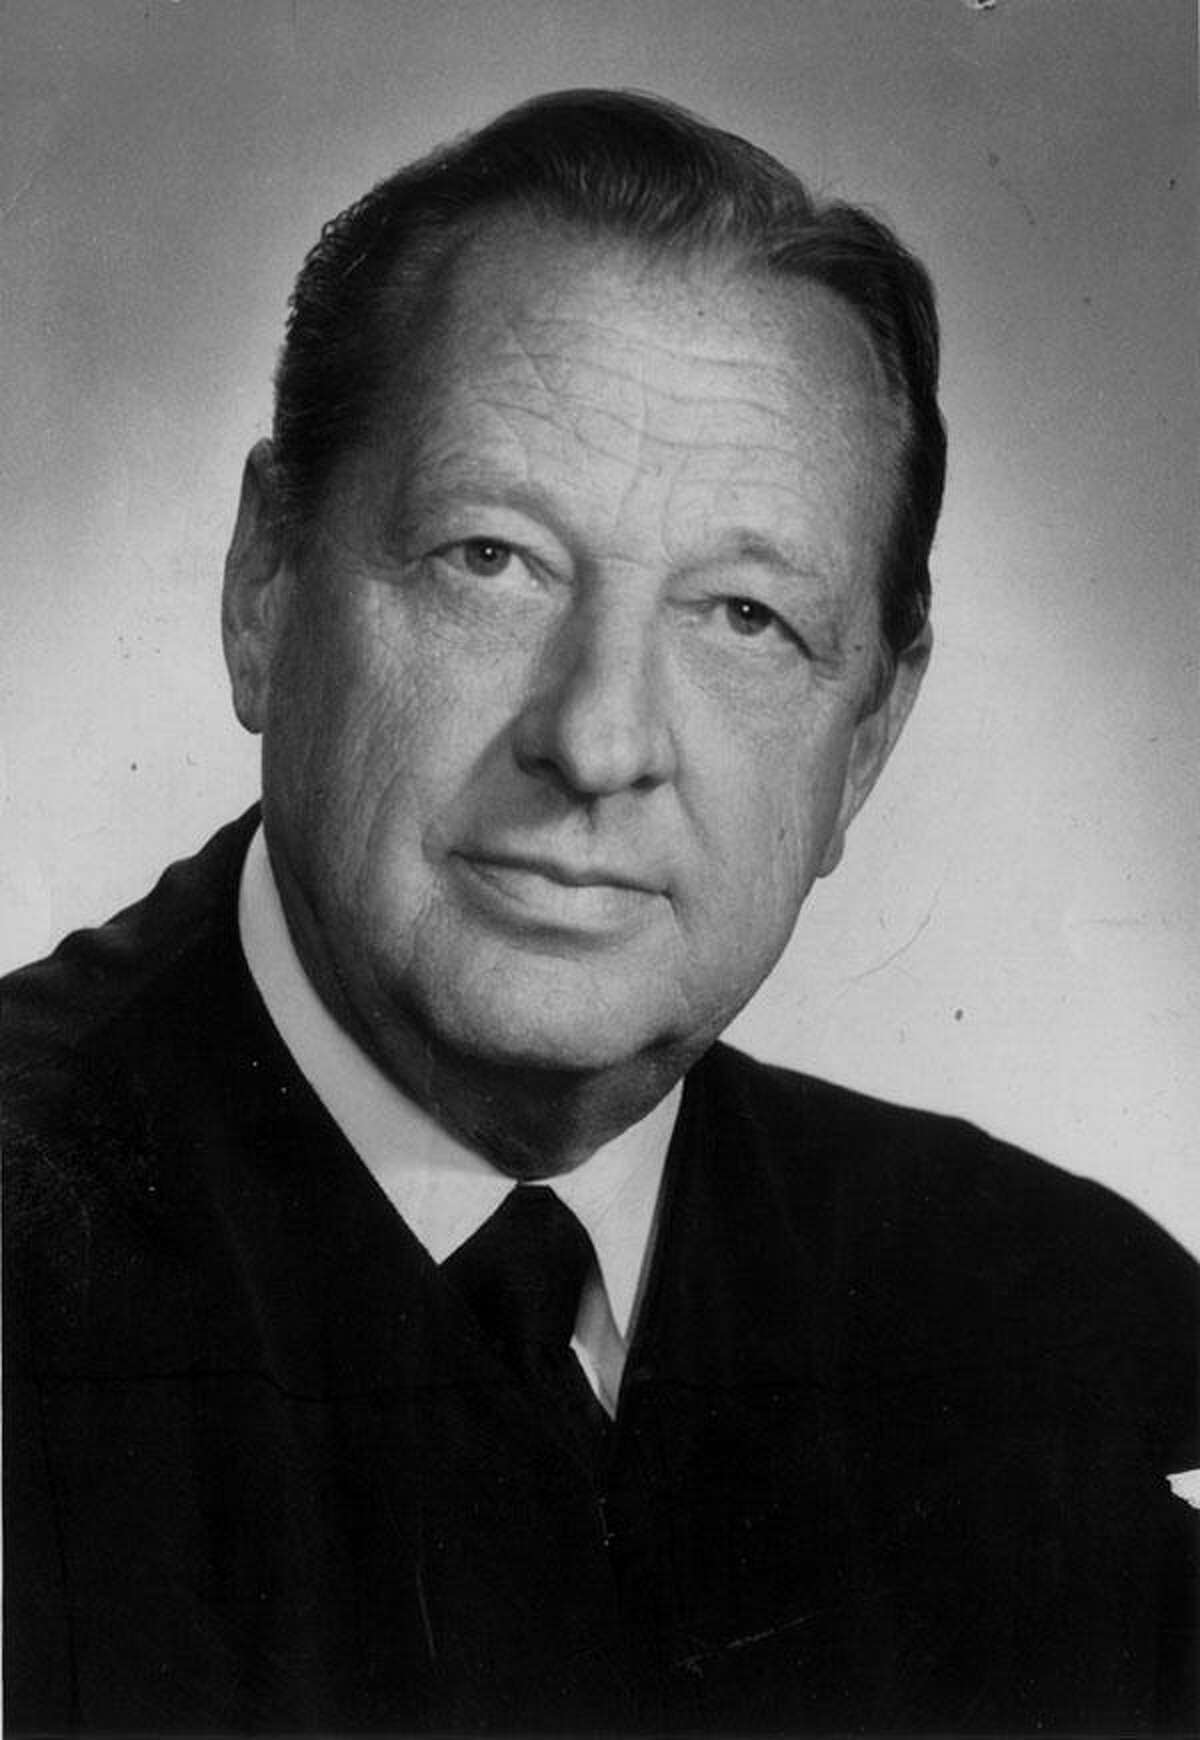 U.S. District Judge John H. Wood was assassinated in San Antonio May 29, 1979, by Charles Harrelson.